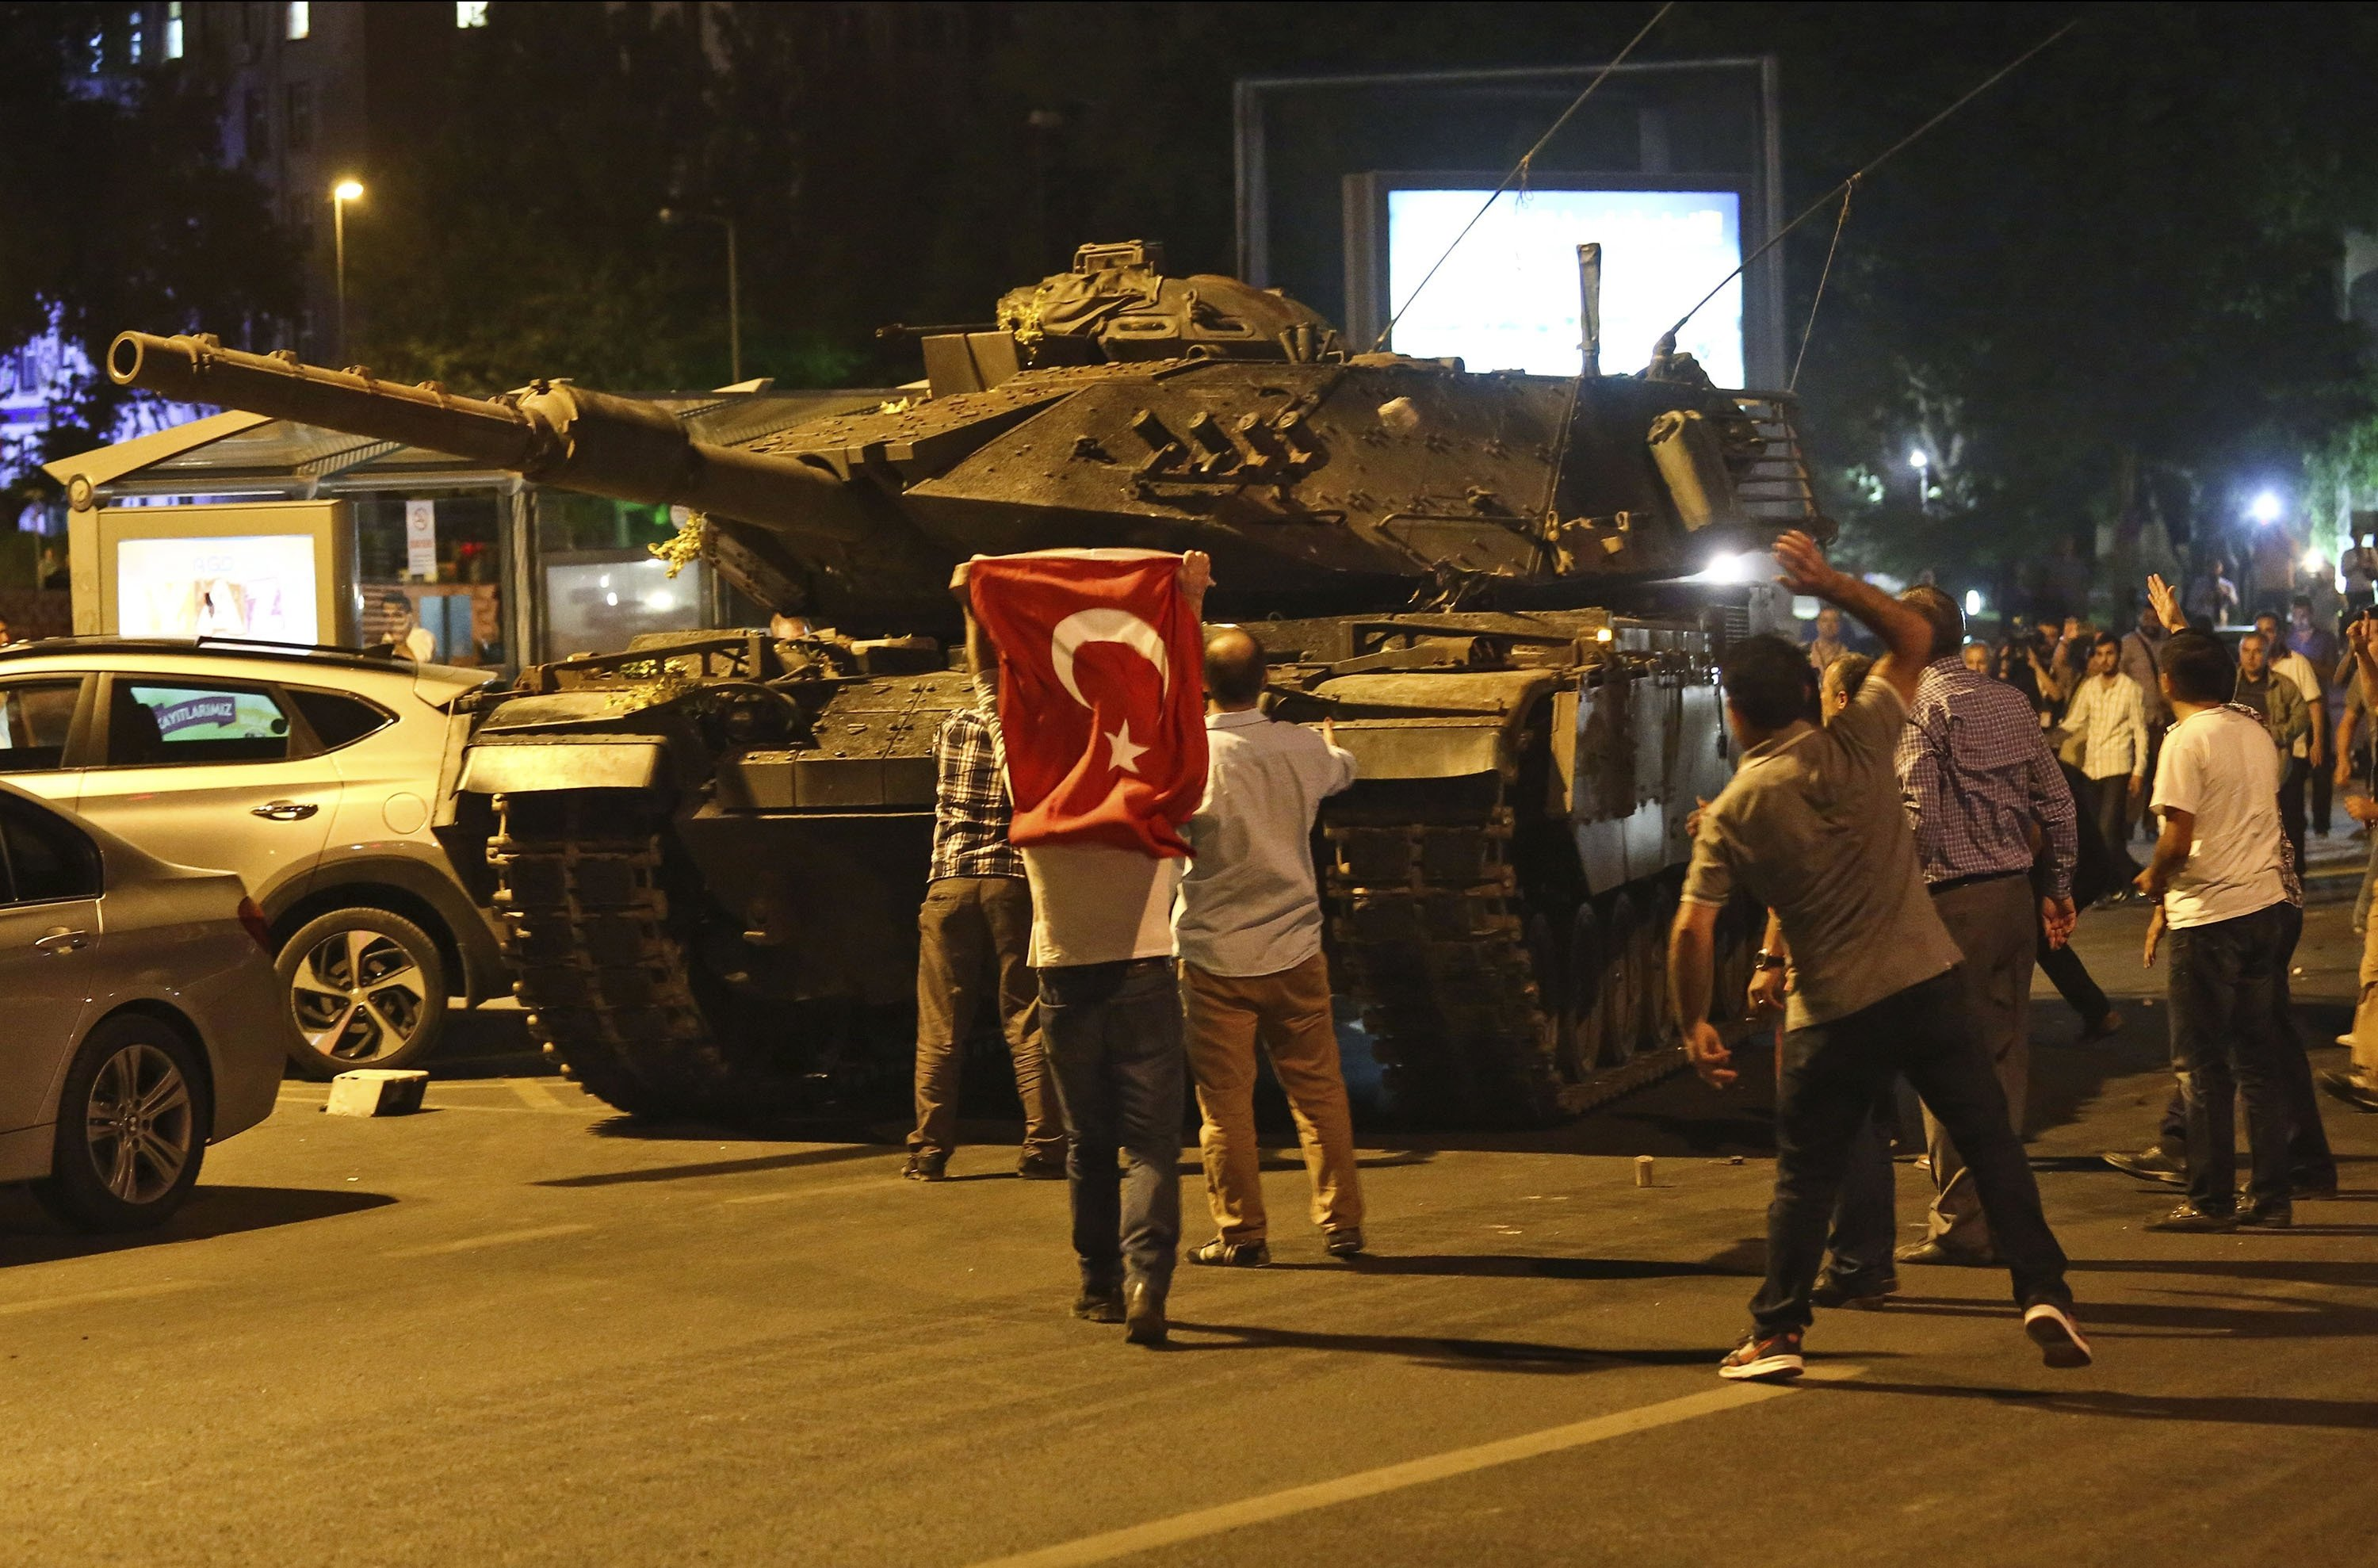 Tanks, part of the forces that attempted a coup, move into position as people attempt to stop them, in Ankara, Turkey, July 16, 2016. (AP Photo)